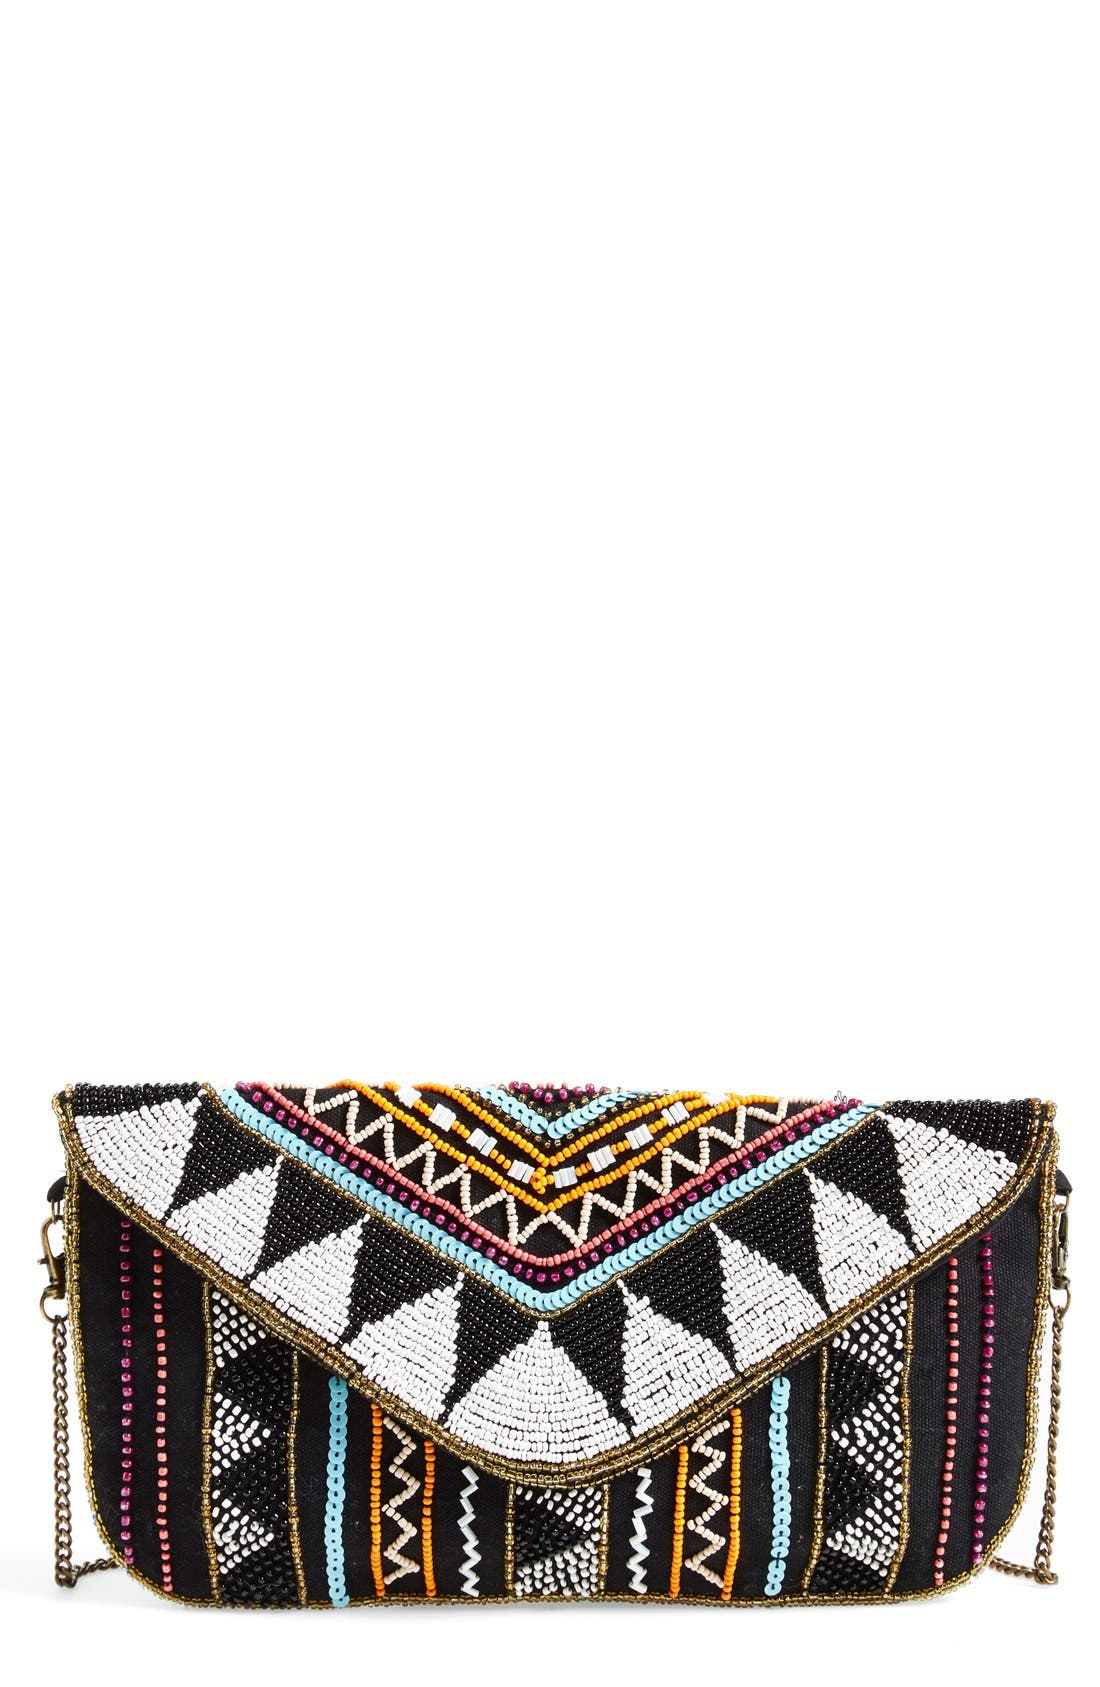 Alternate Image 1 Selected - Street Level Beaded Crossbody Bag